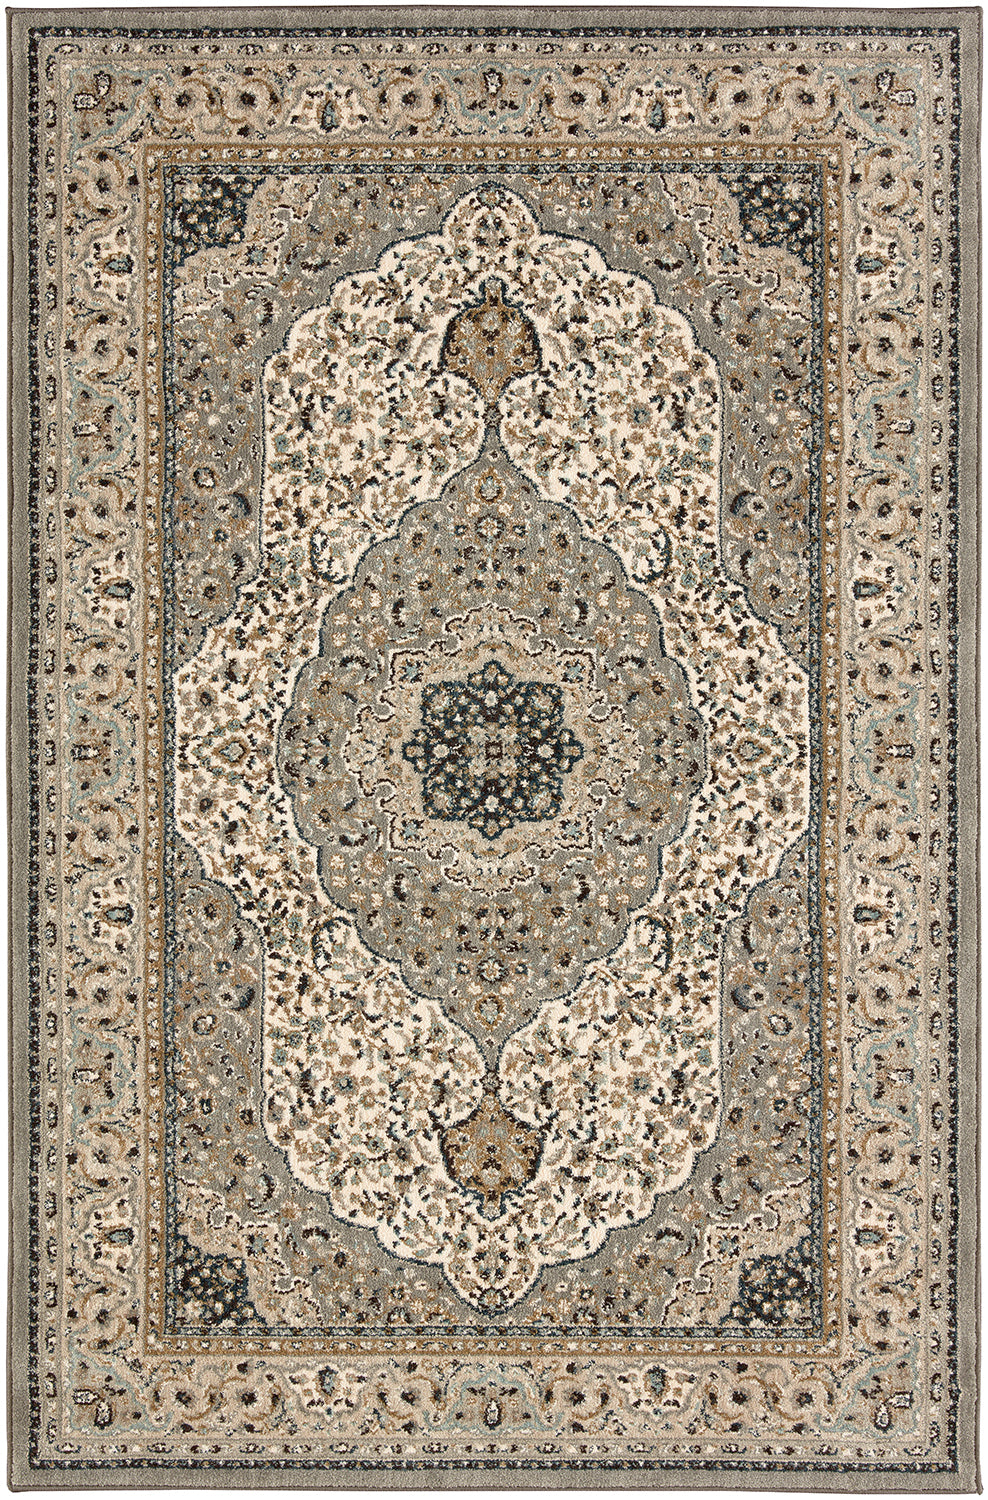 Karastan Touchstone Avonmore Willow Grey Area Rug main image